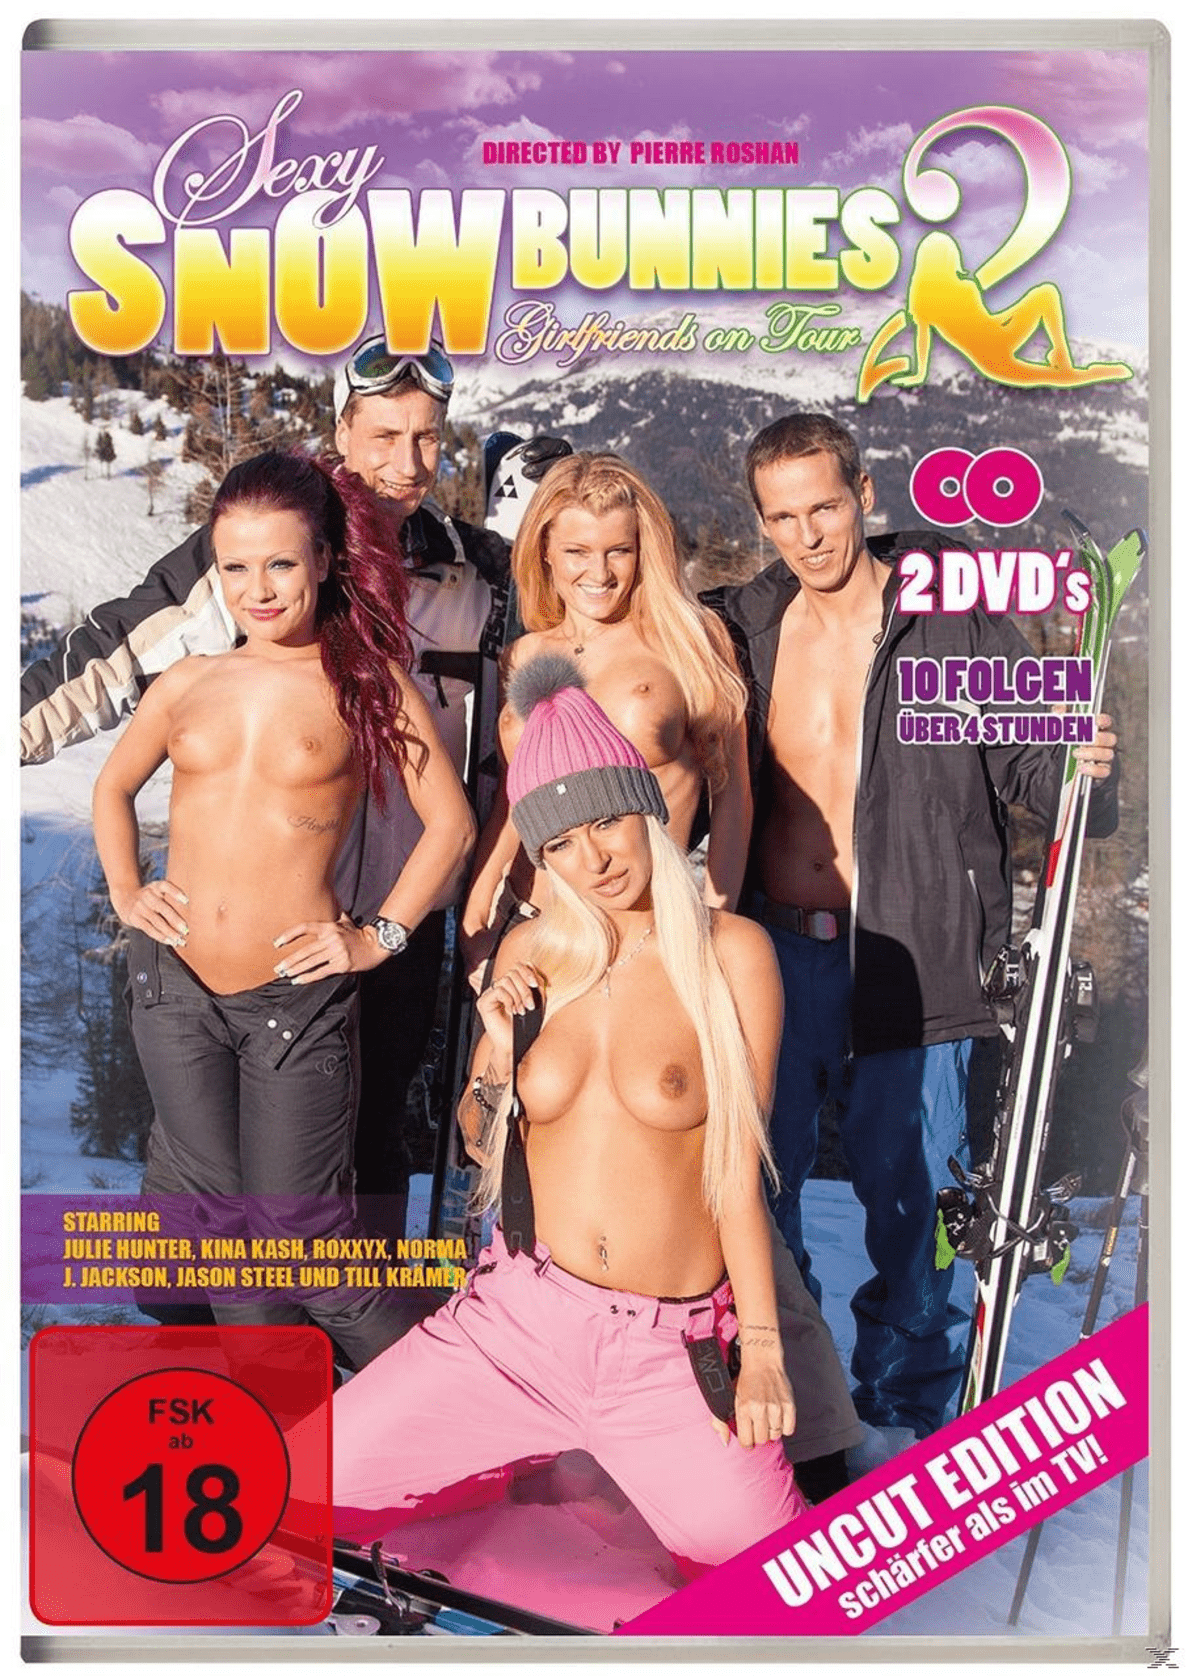 SEXY SNOW BUNNIES 2 - GIRLFRIENDS ON TOUR - (DVD)